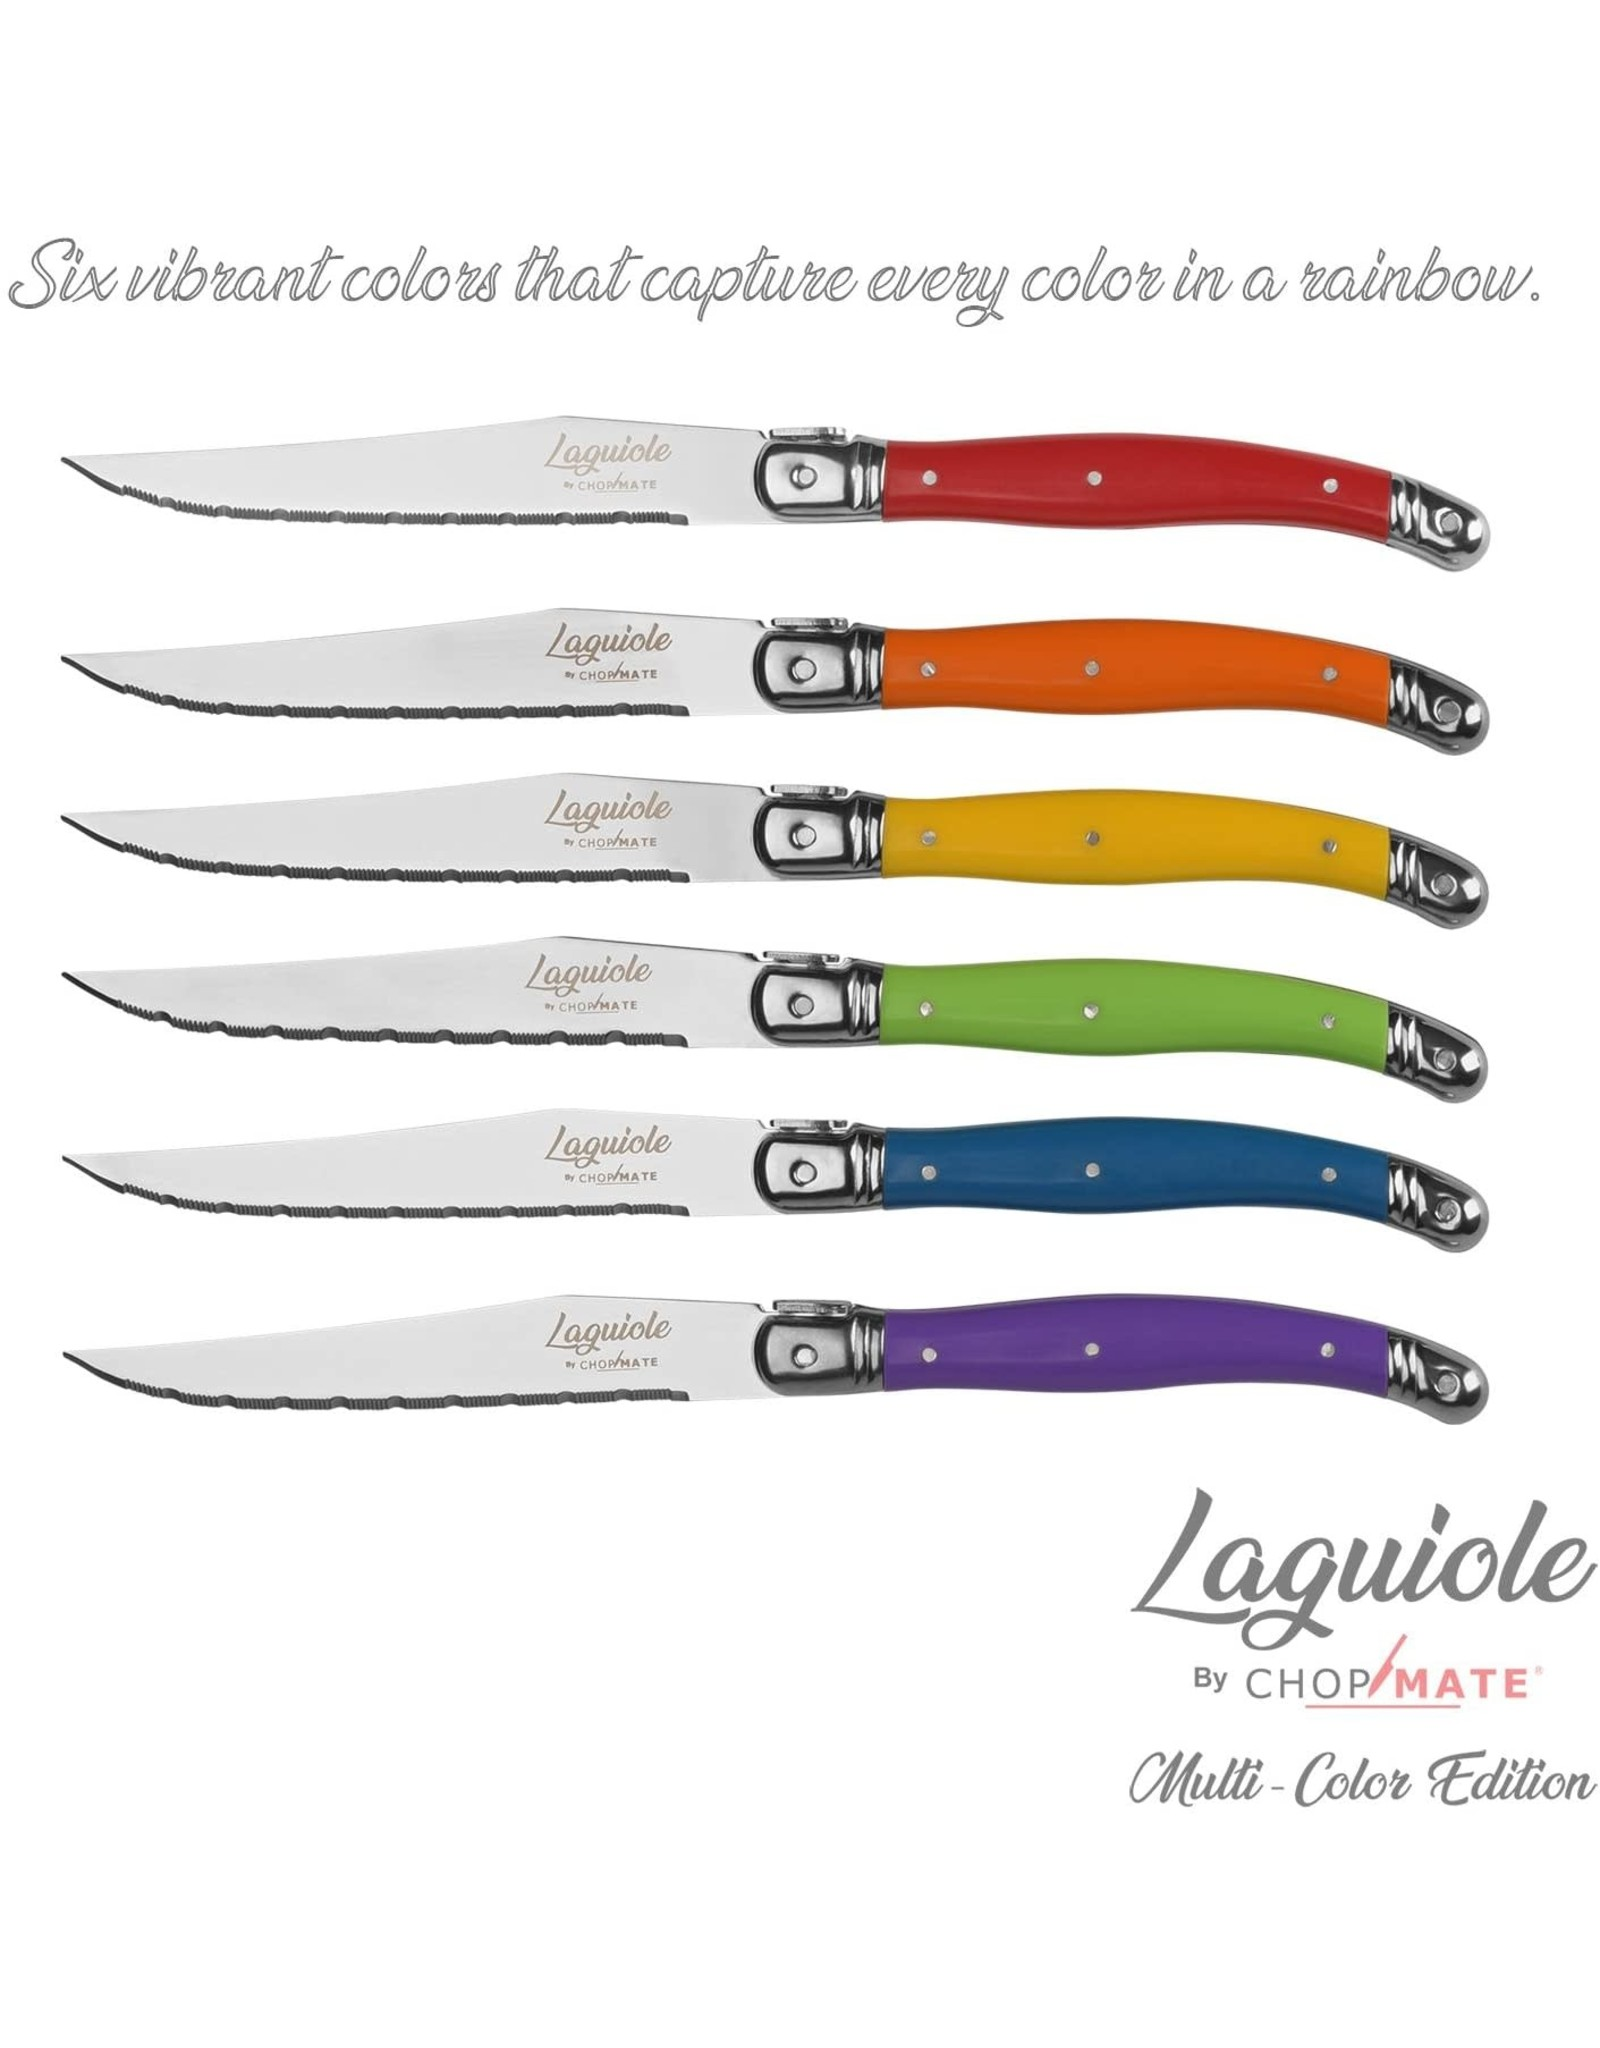 AccessArt Laguiole Steak knife set in block Mixed Light Colors